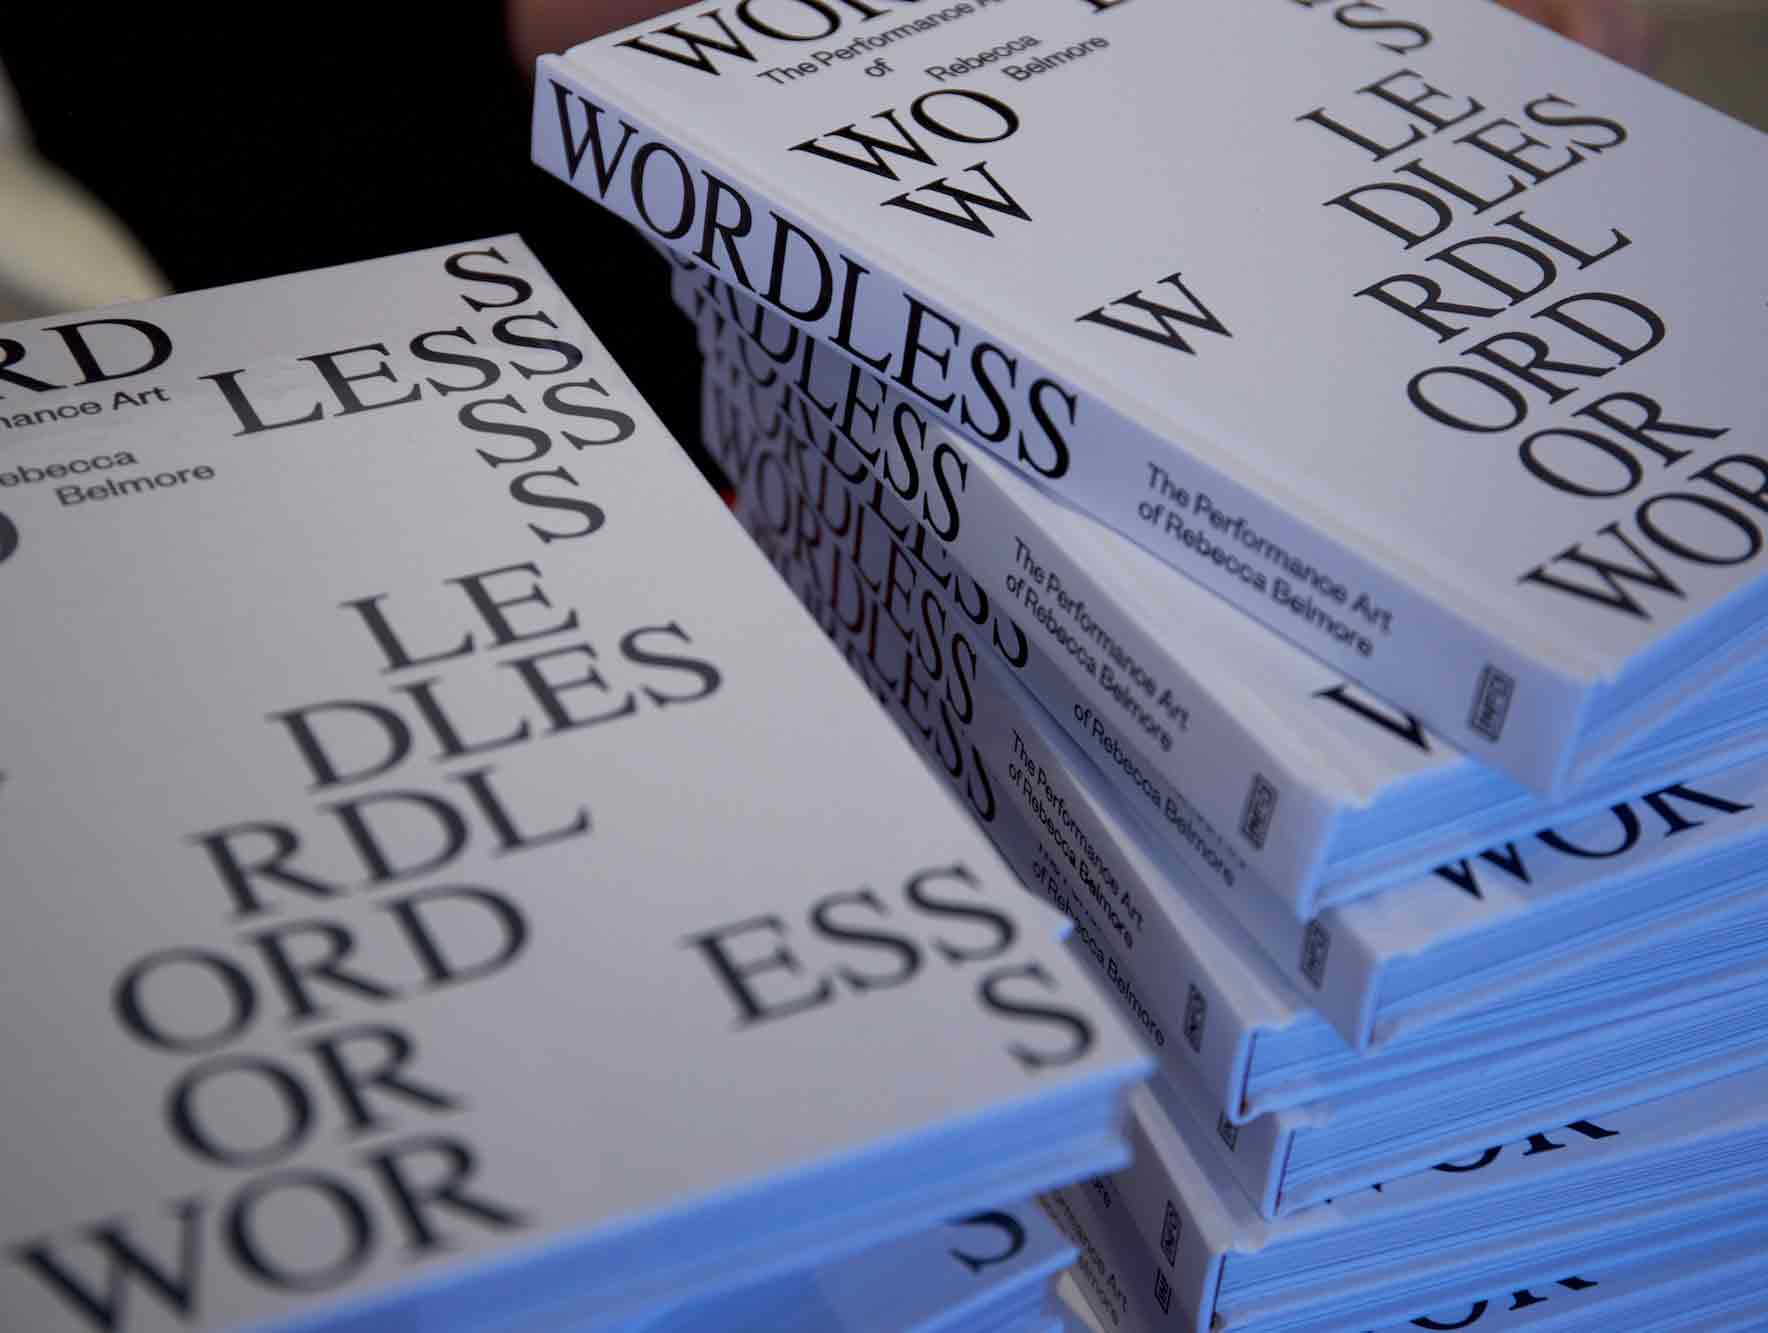 Book Launch!  Wordless – The Performance Art of Rebecca Belmore